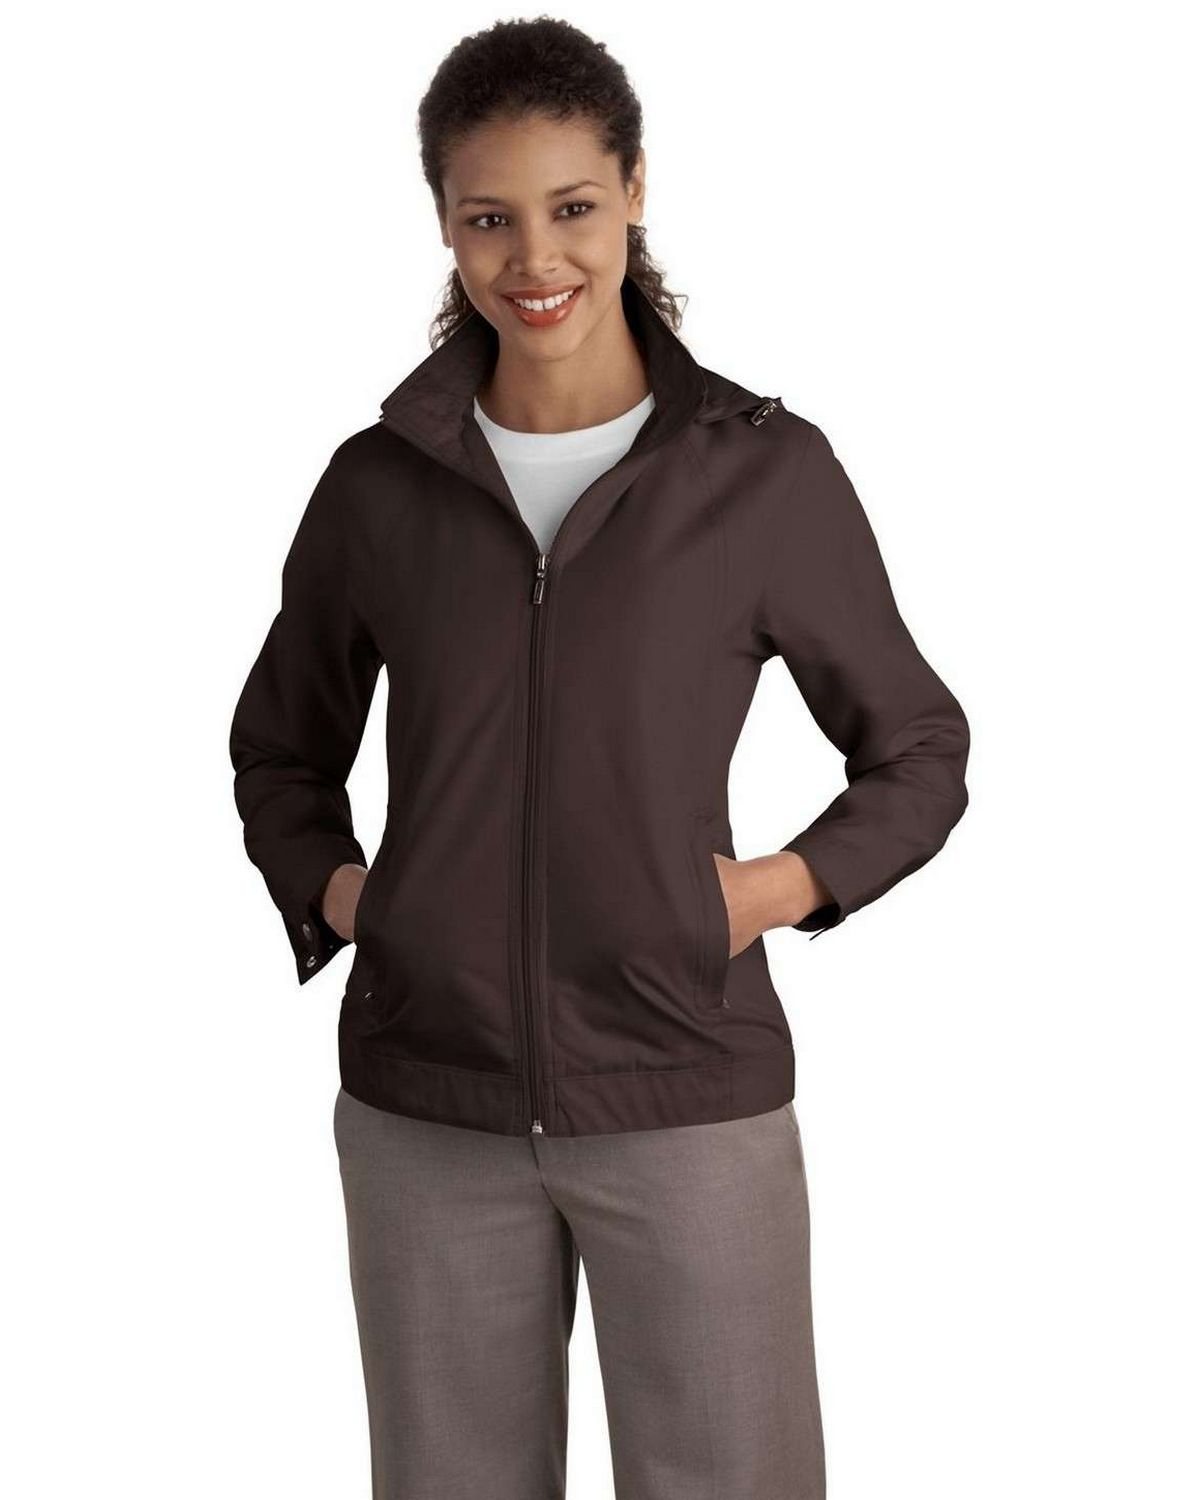 Port Authority L701 Ladies Successor Jacket